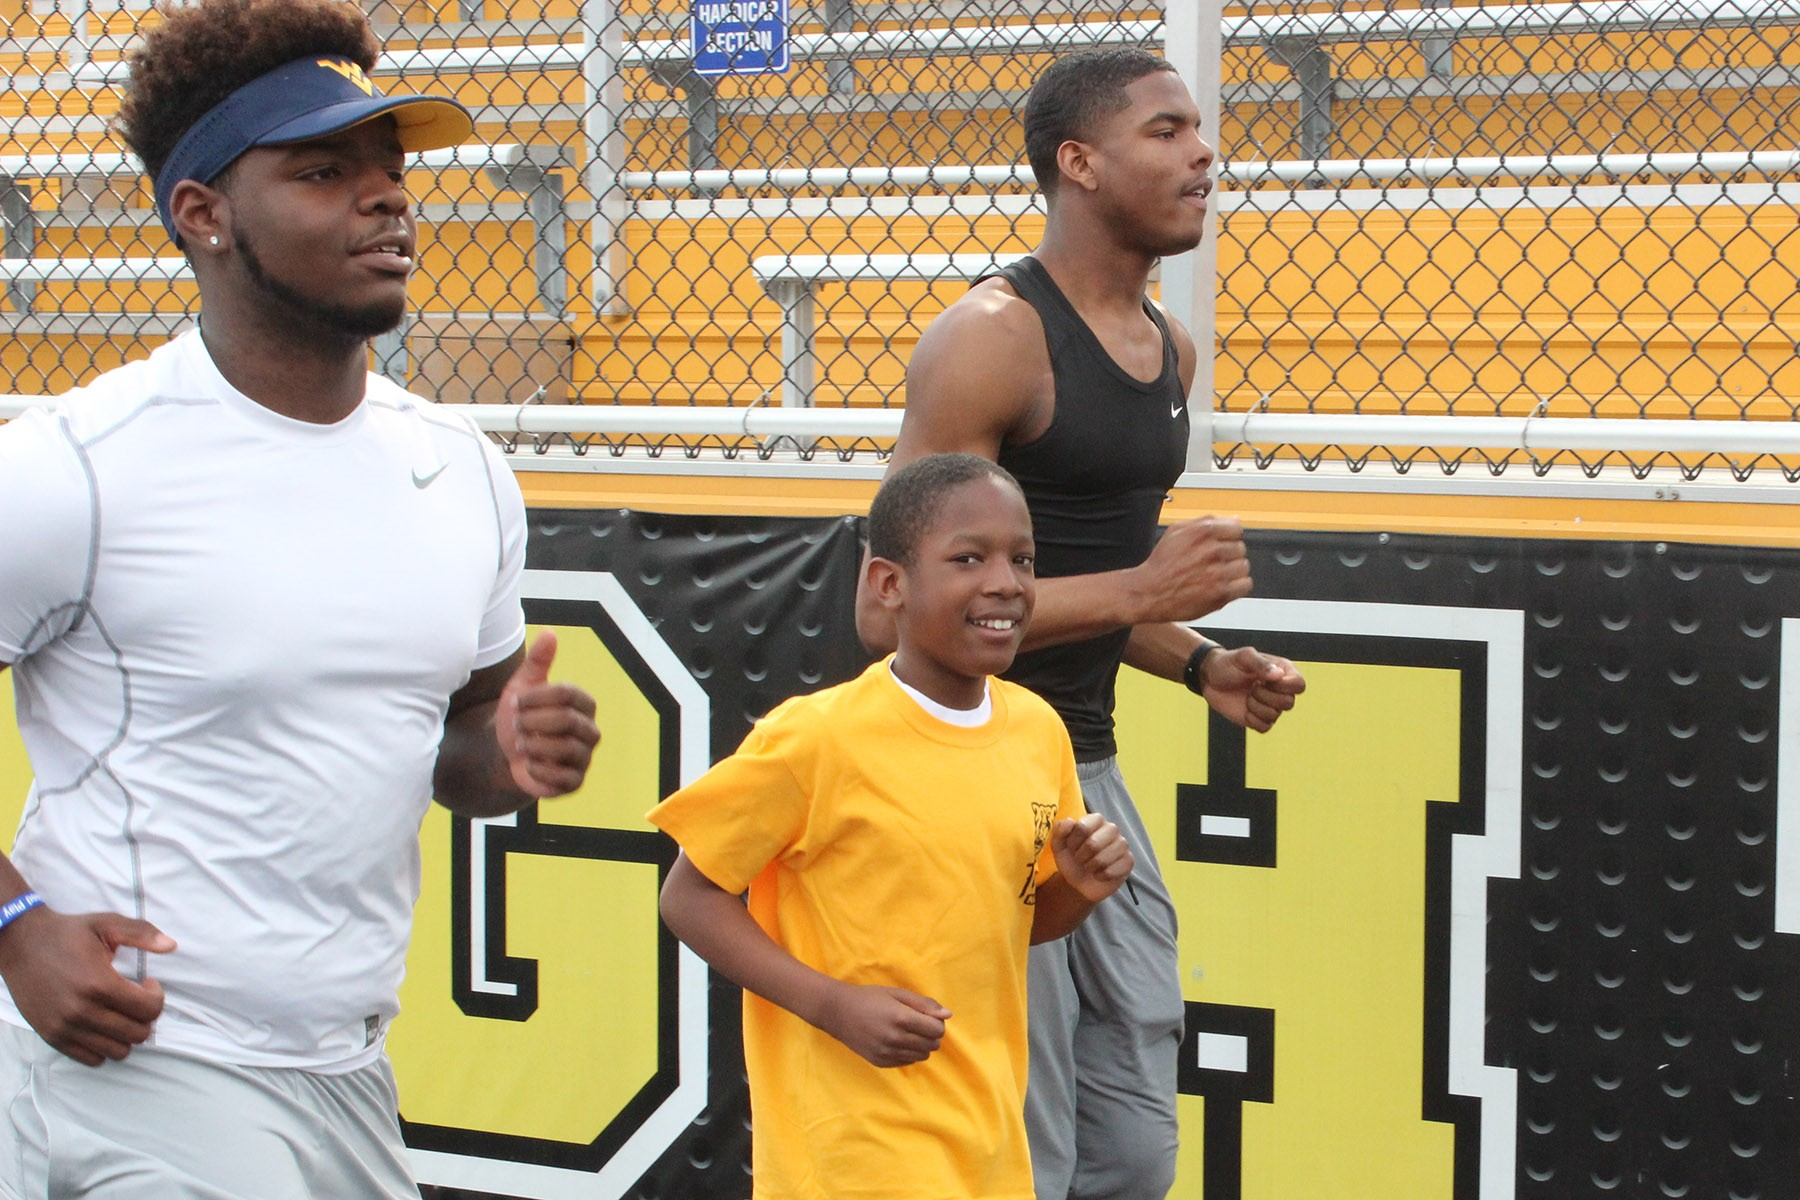 Boulevard student and Special Olympian Jayson Mosley training with Heights High juniors Kenneth Roye' Jr. (left) and Jaylen Harris.